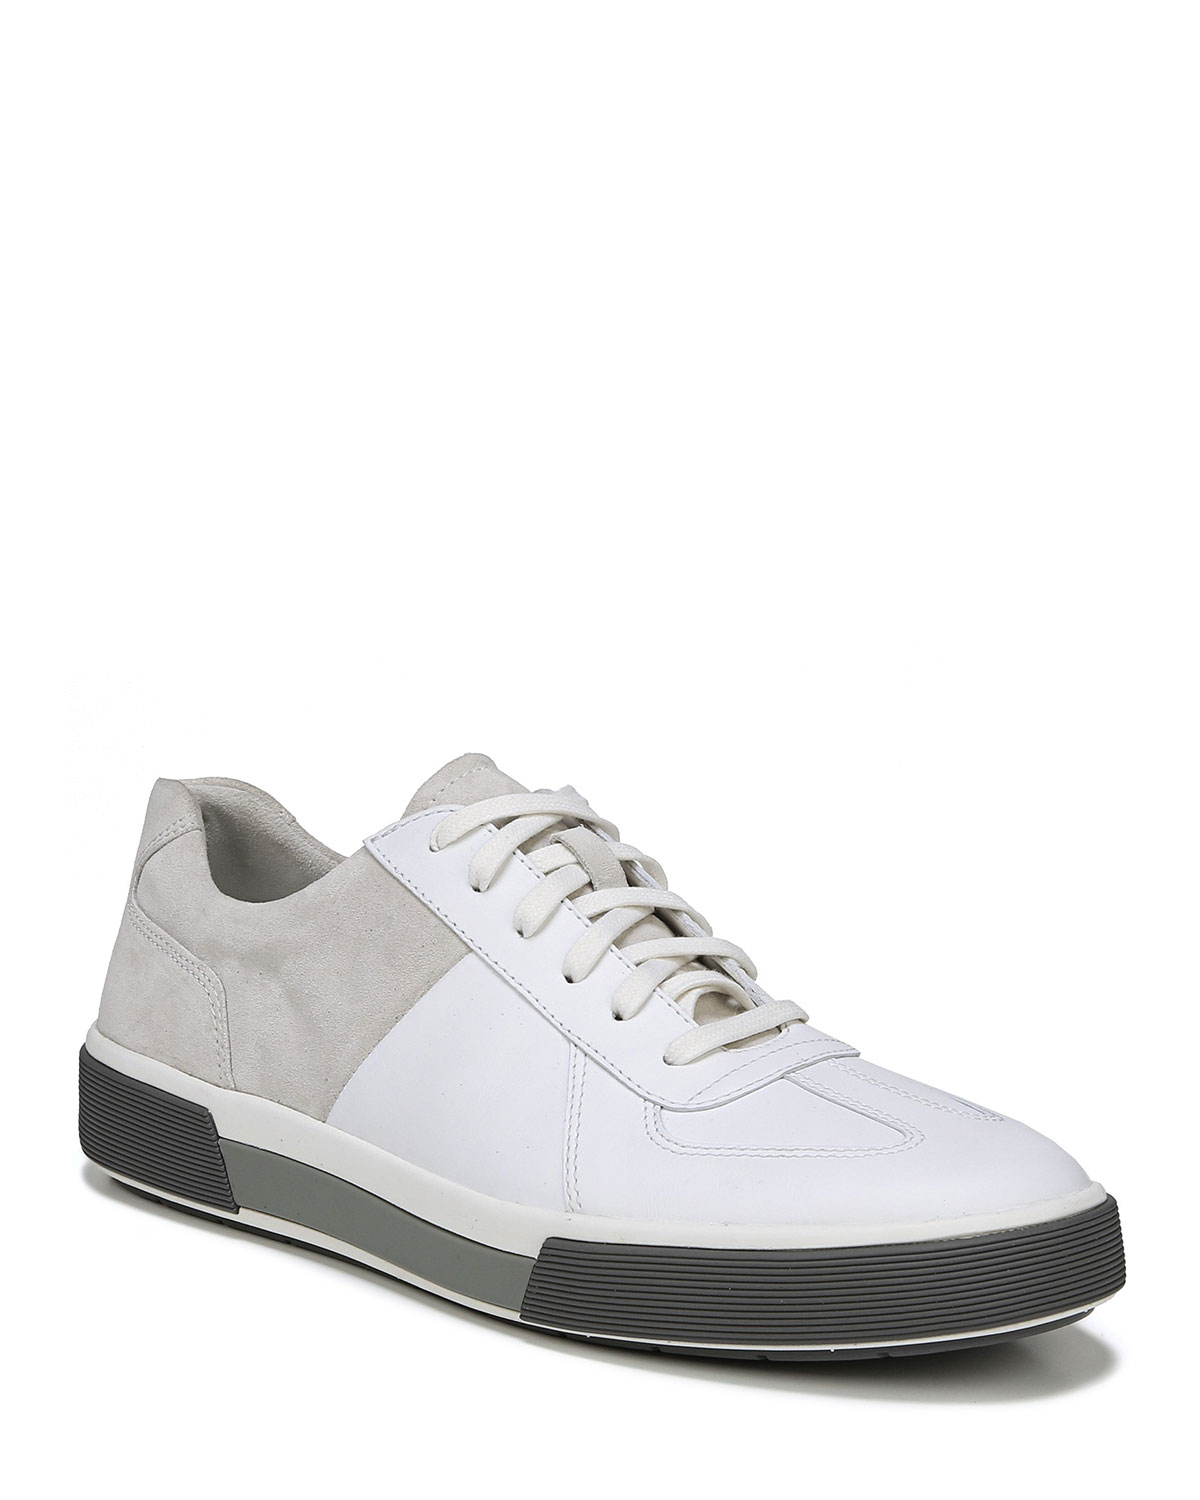 Vince Tops MEN'S ROGUE SUEDE & LEATHER LOW-TOP SNEAKERS